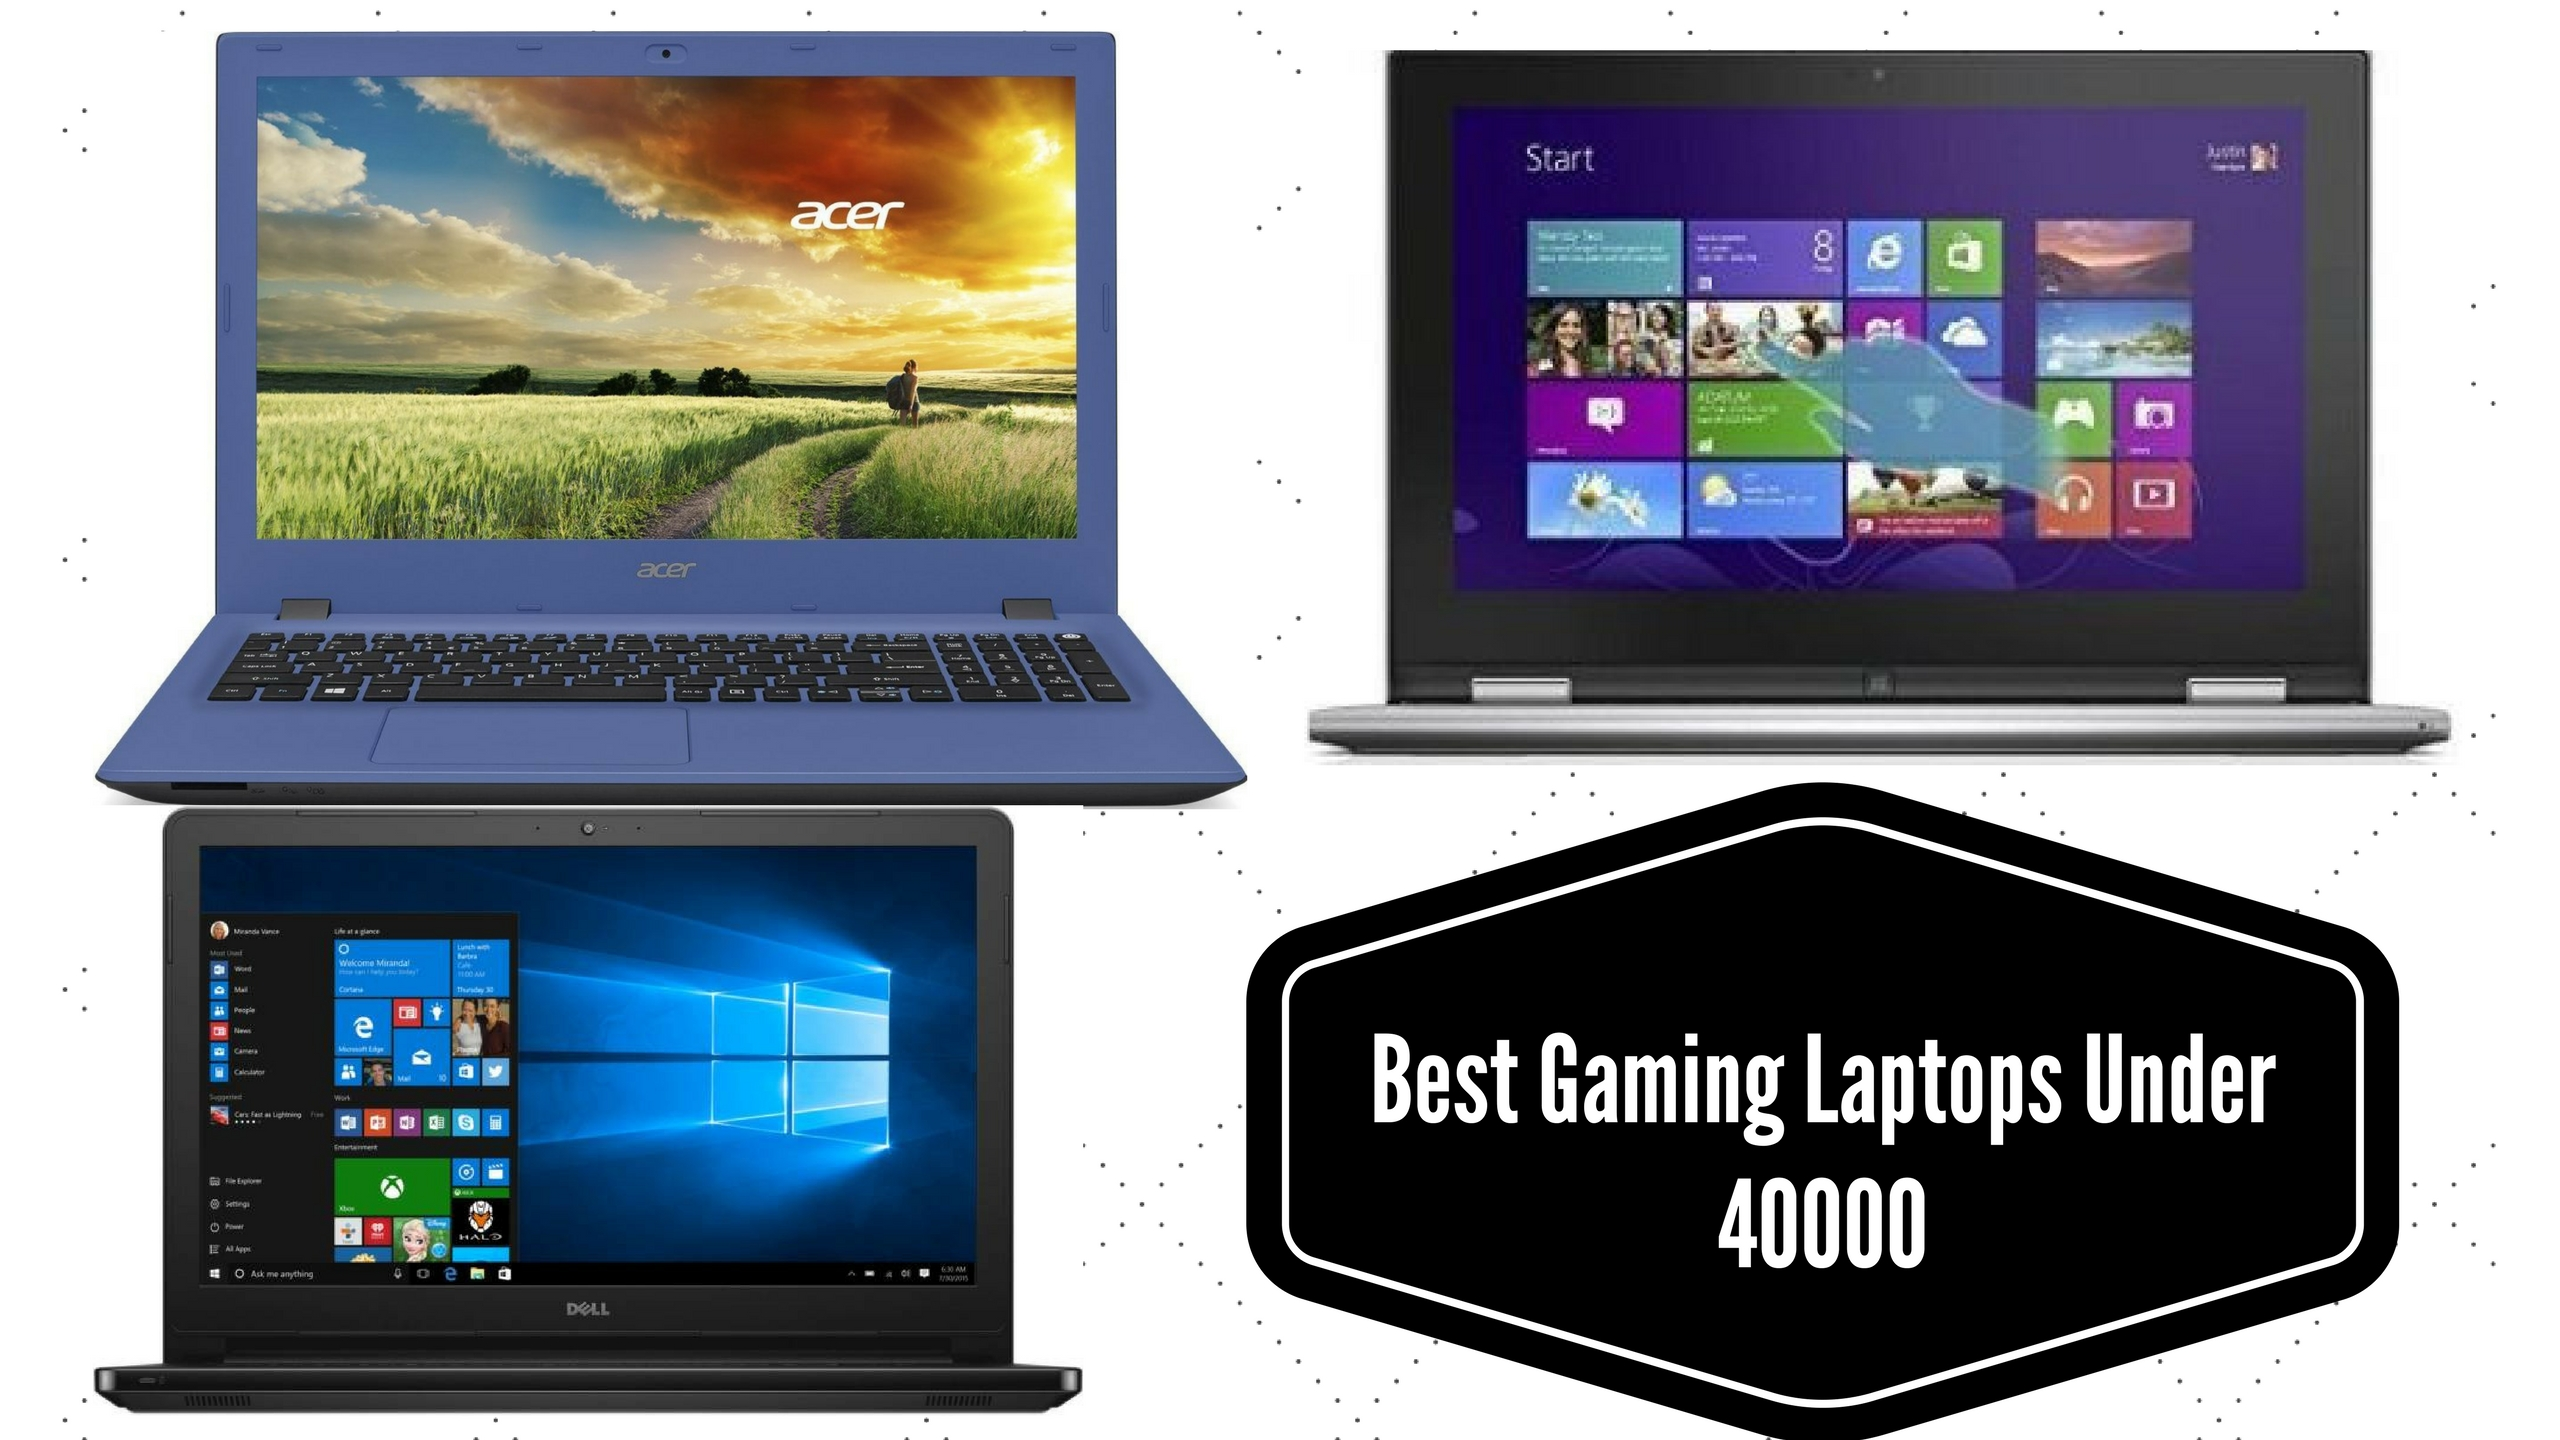 Top 10 Best Gaming Laptops Under 40000 In India Reviews & Comparison Table